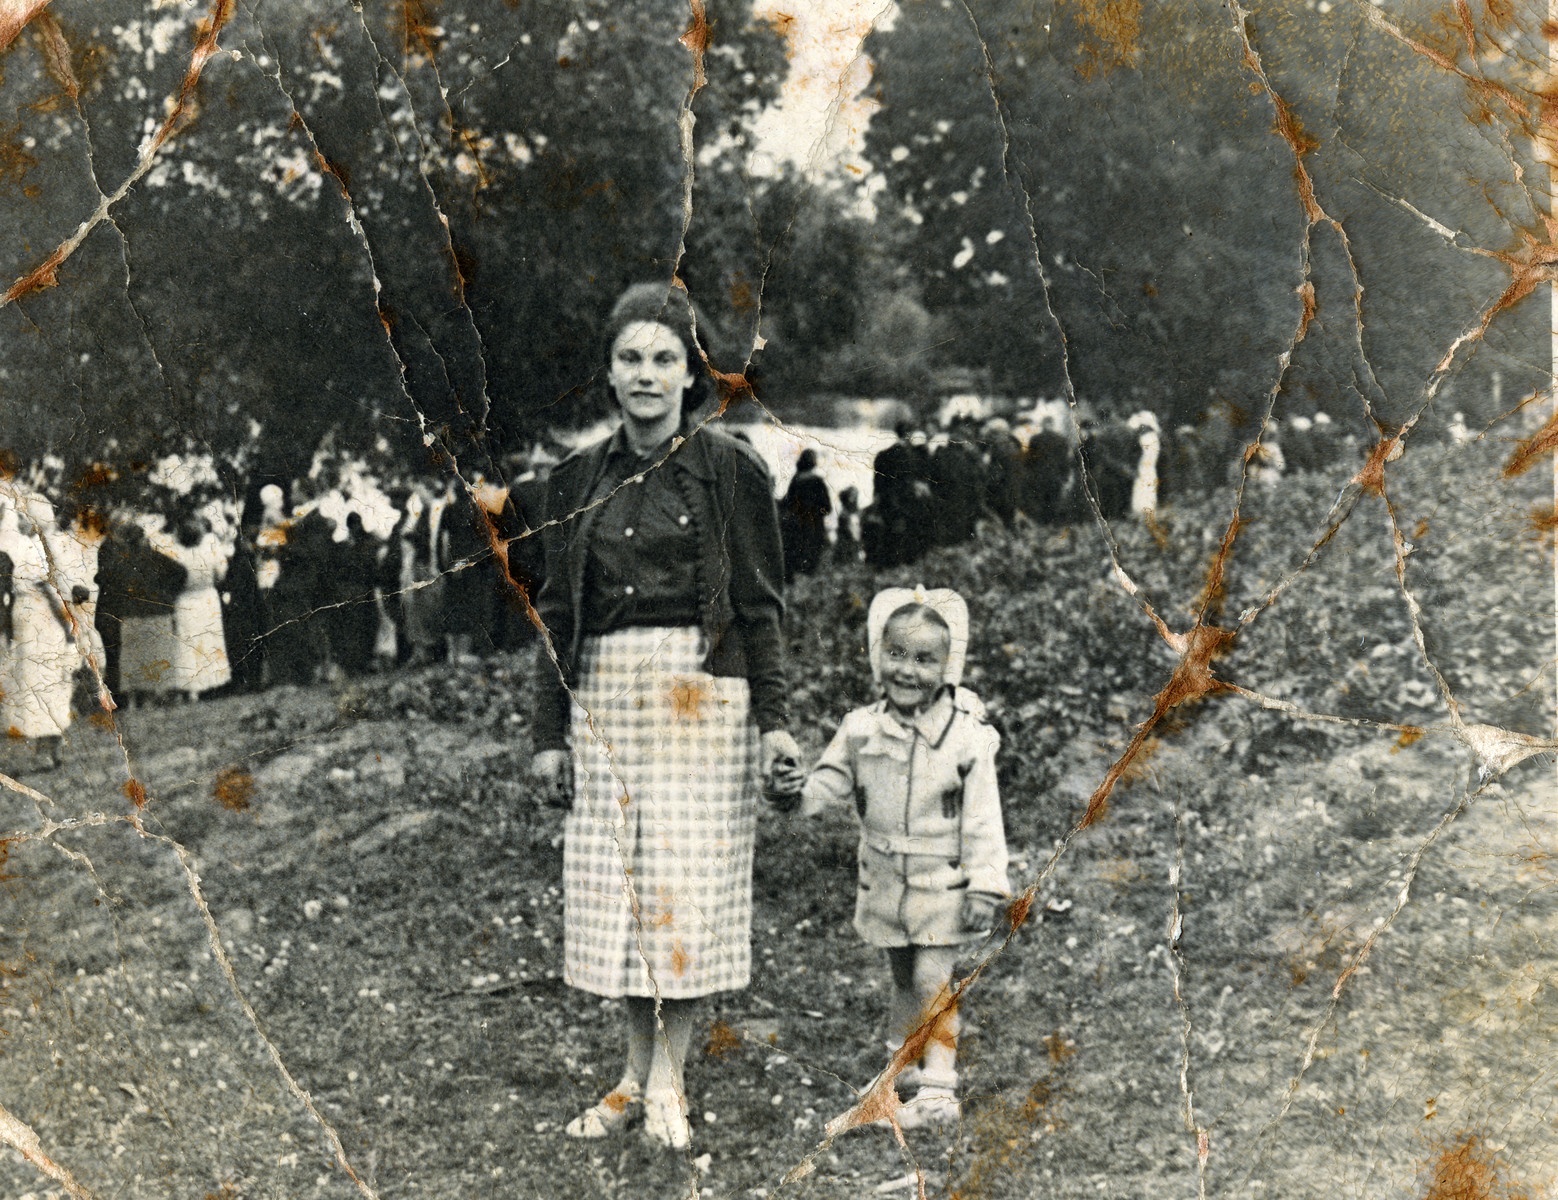 Musia and Leah Szklut stand in front of a river in Naliboki [possibly to do tashlich -- the ceremonial casting of sins performed on Rosh Hashana].  The mother and child were both killed during the Holocaust.